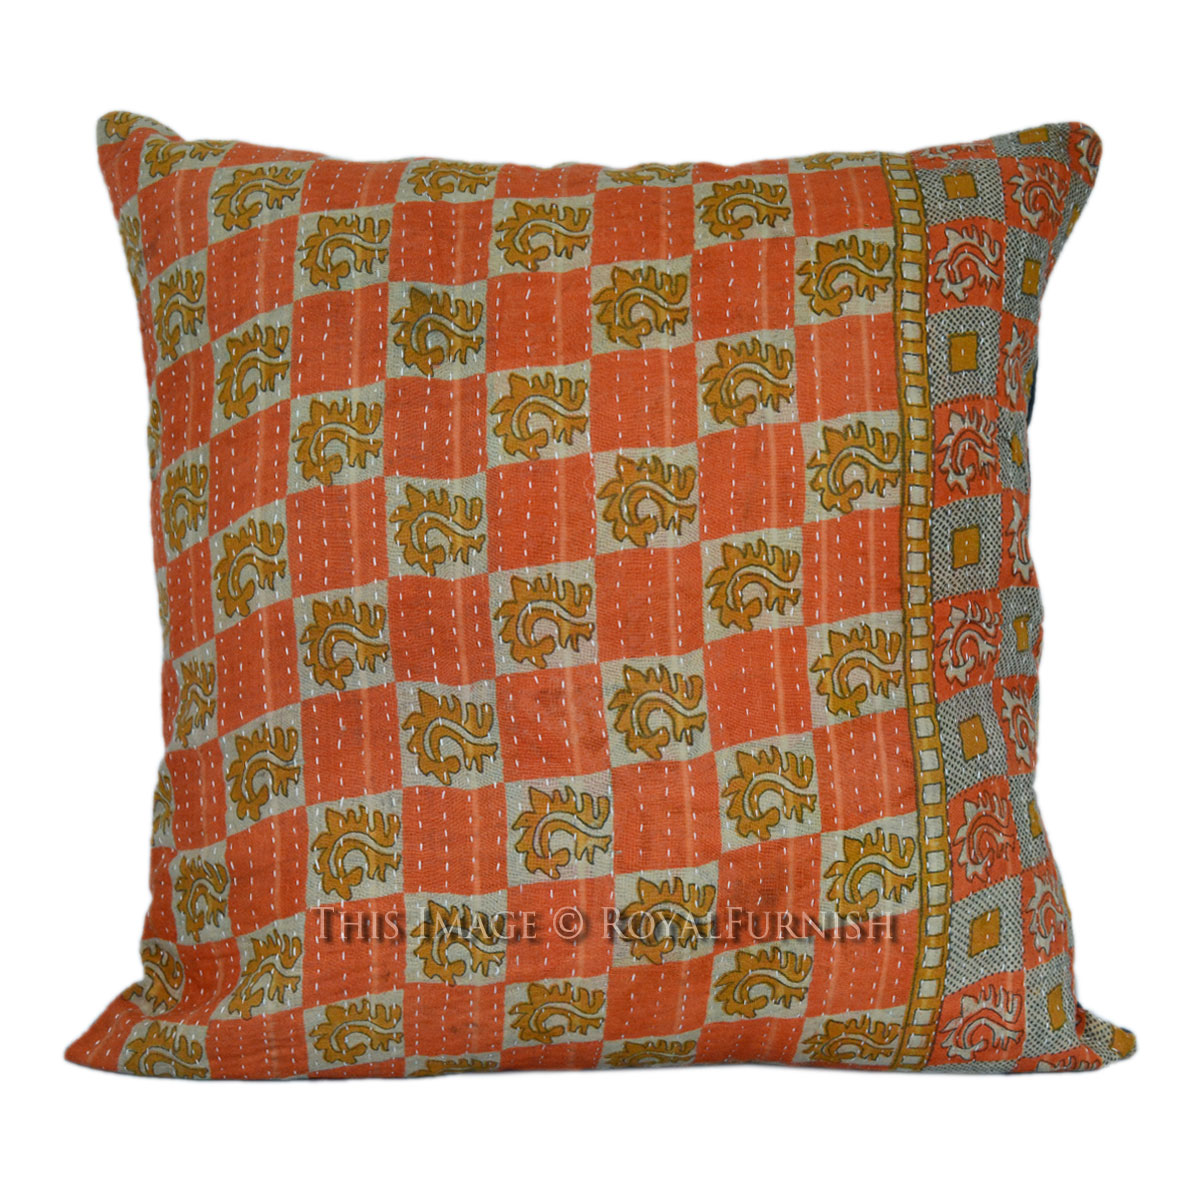 Decorative Pillows Vintage : 16